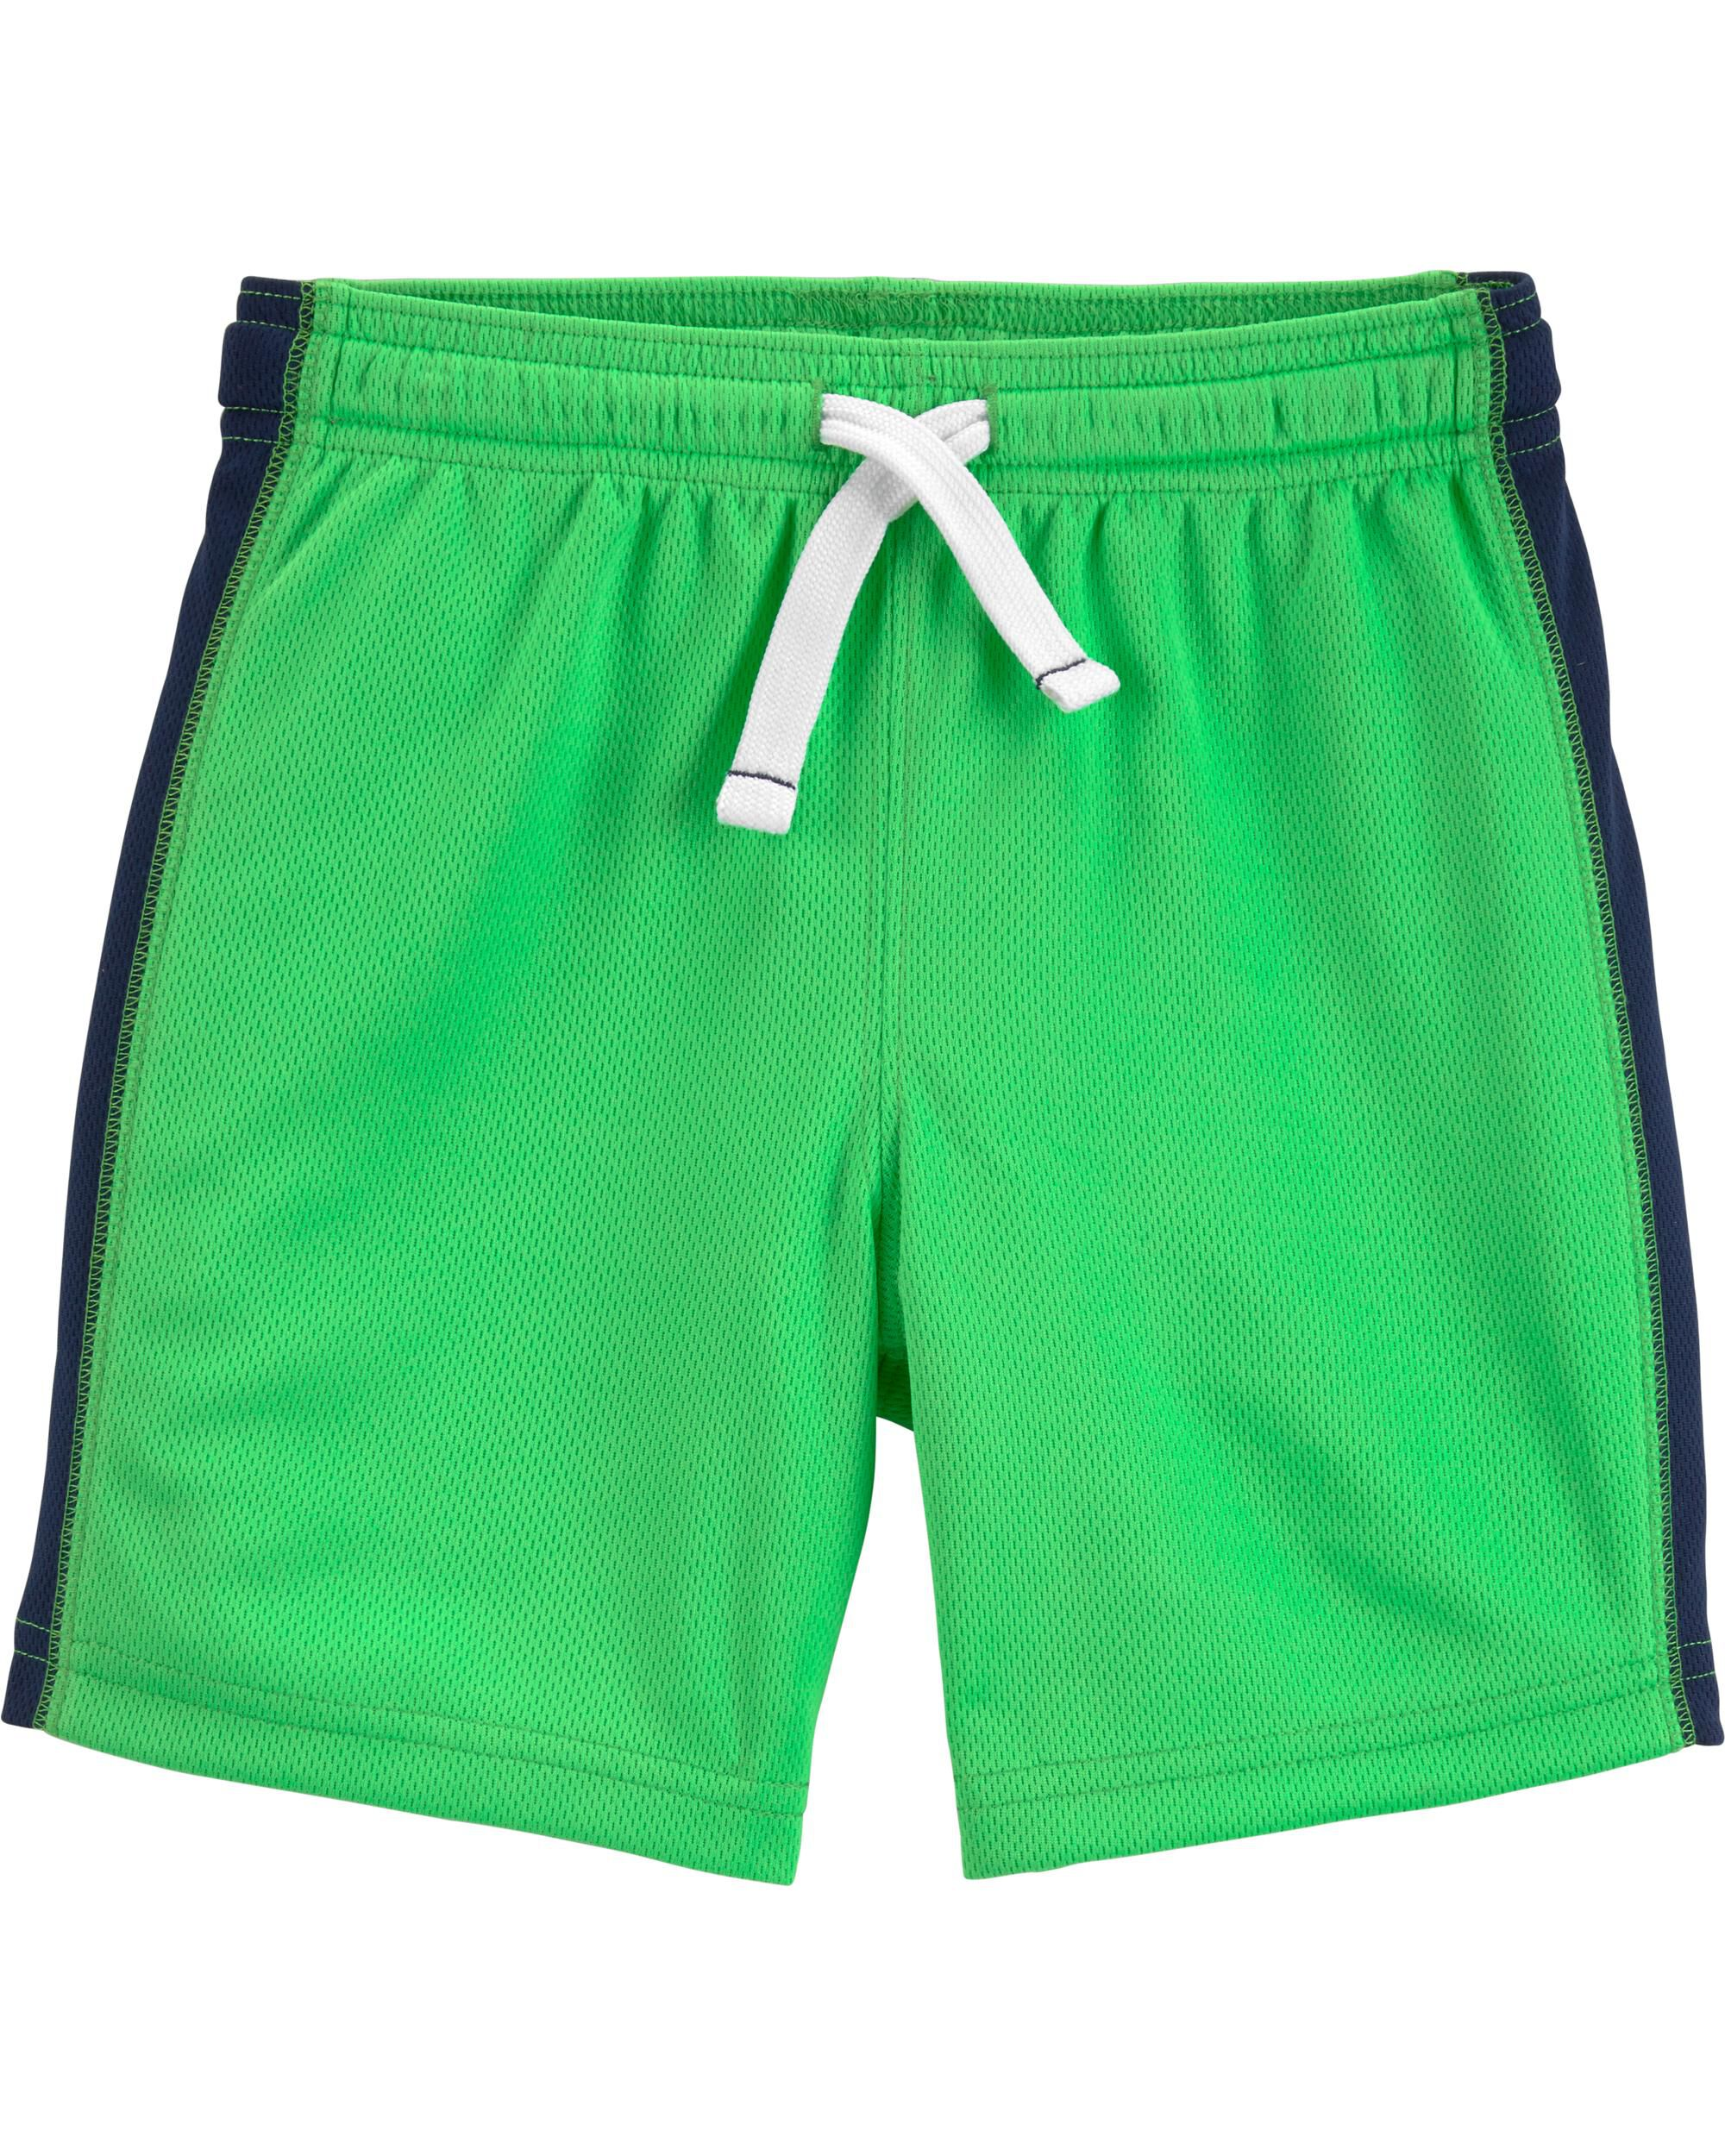 Boys Carters Shorts Lot Of 2 Size 18 Months Black/green Bottoms